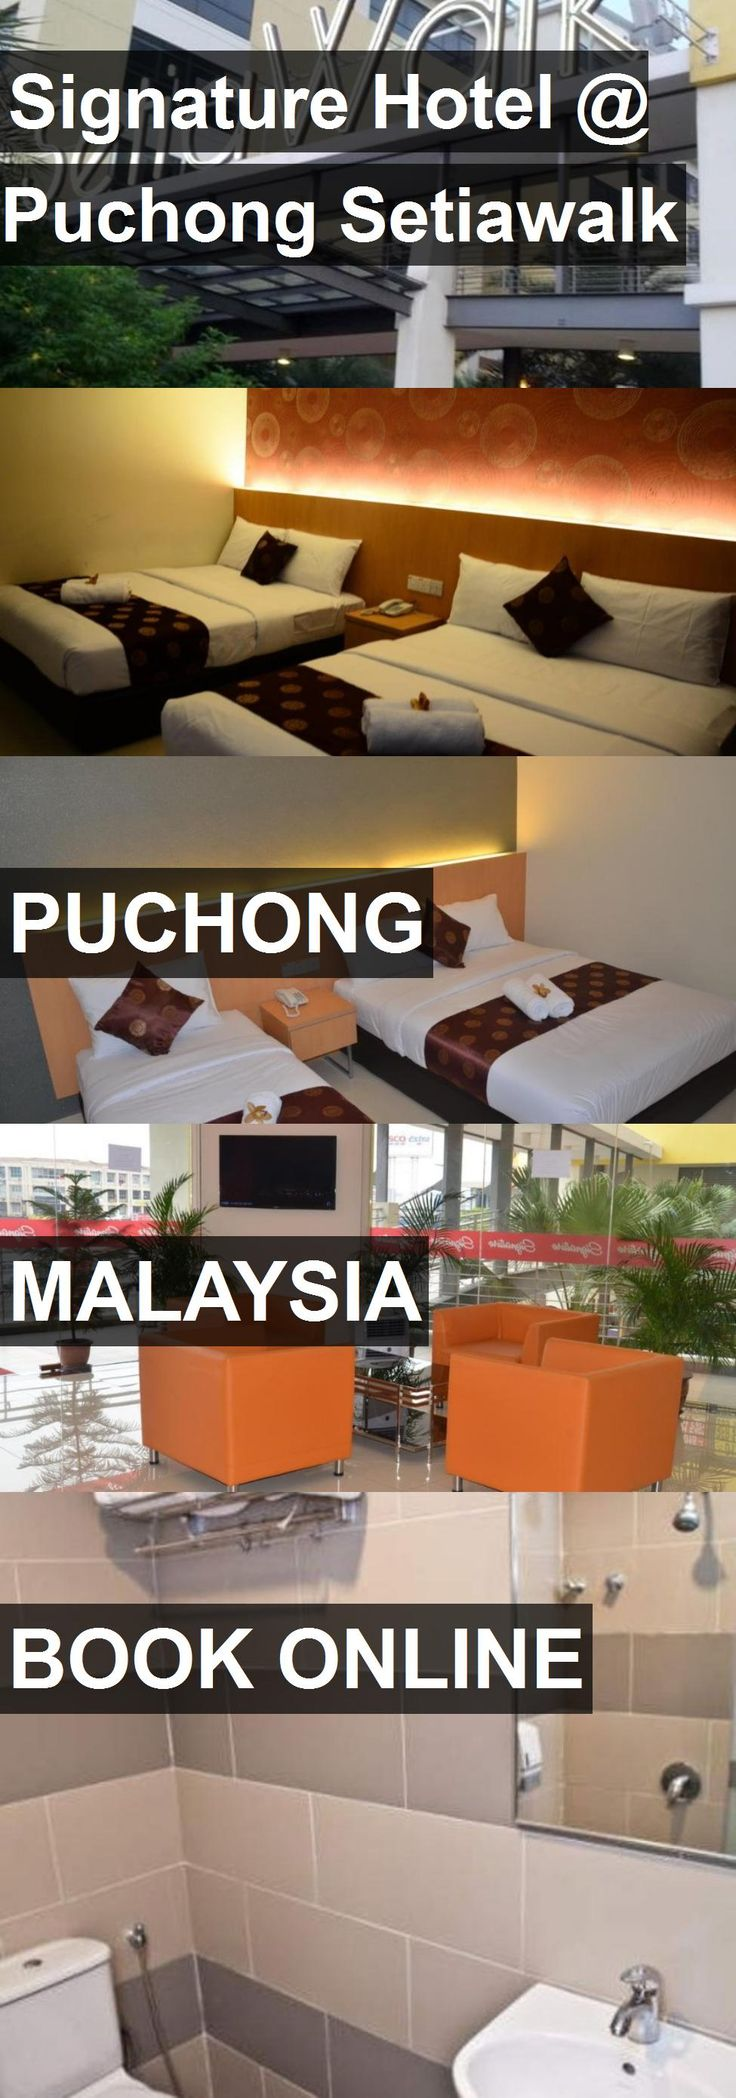 Hotel Signature Hotel @ Puchong Setiawalk in Puchong, Malaysia. For more information, photos, reviews and best prices please follow the link. #Malaysia #Puchong #hotel #travel #vacation